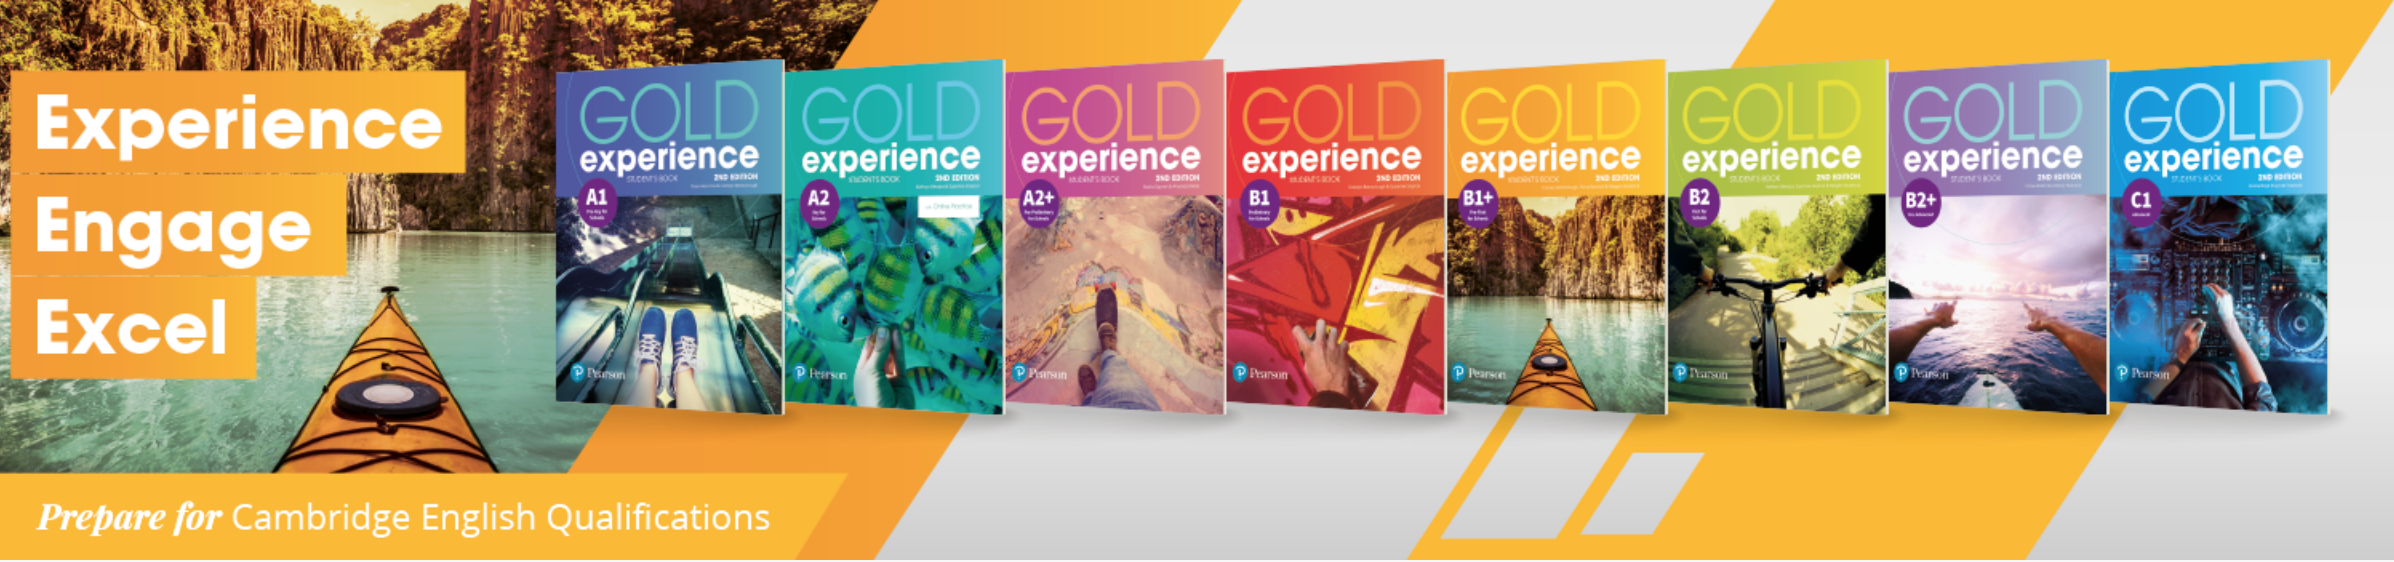 Teach exam classes online with Gold Experience 2nd Edition